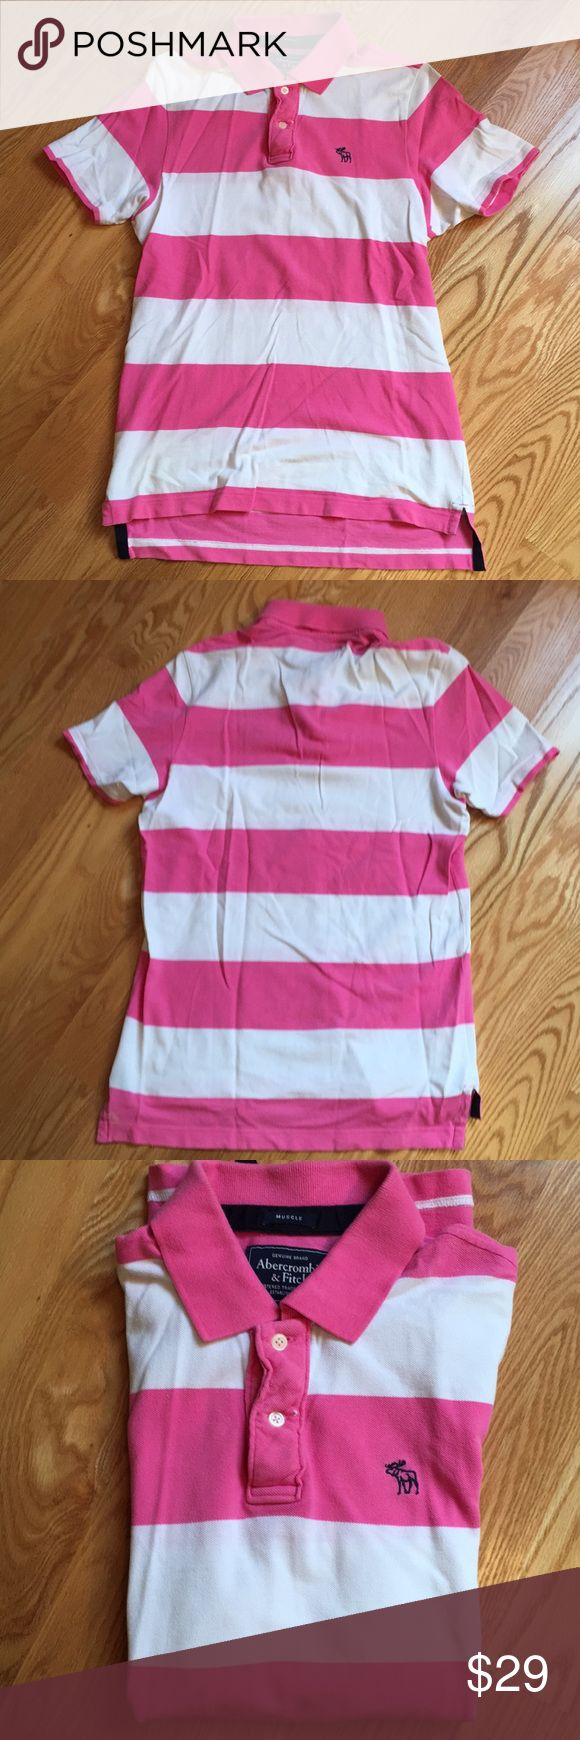 Abercrombie men's short sleeves polo shirt 100% cotton, in great condition Abercrombie & Fitch Shirts Polos